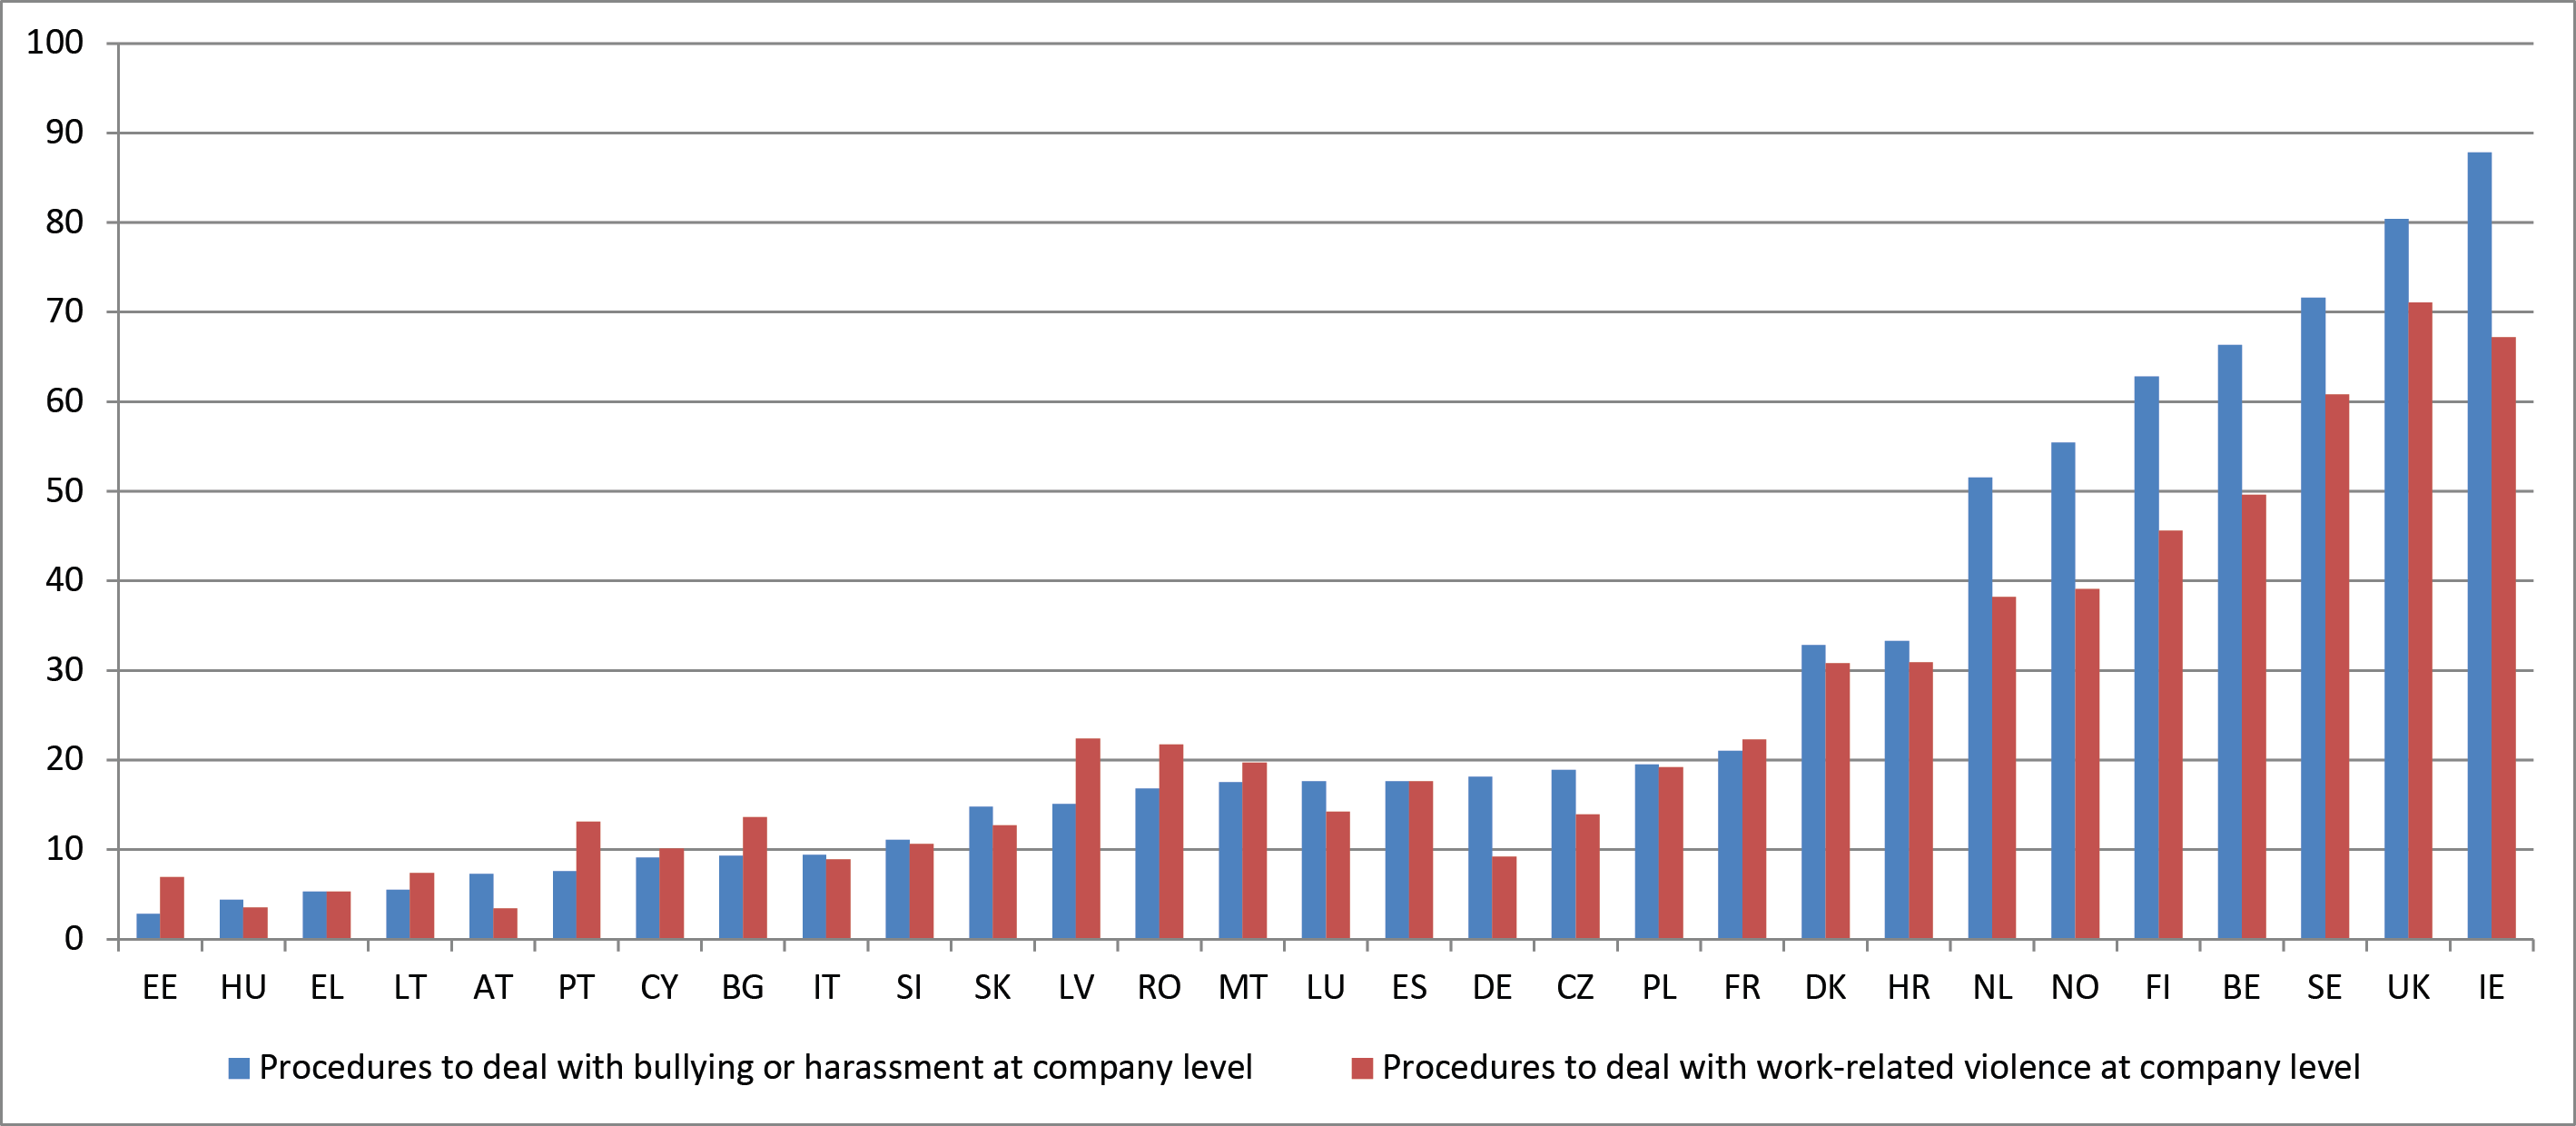 Figure 9: Proportion of companies with procedures to deal with bullying/harassment and work-related violence (%)